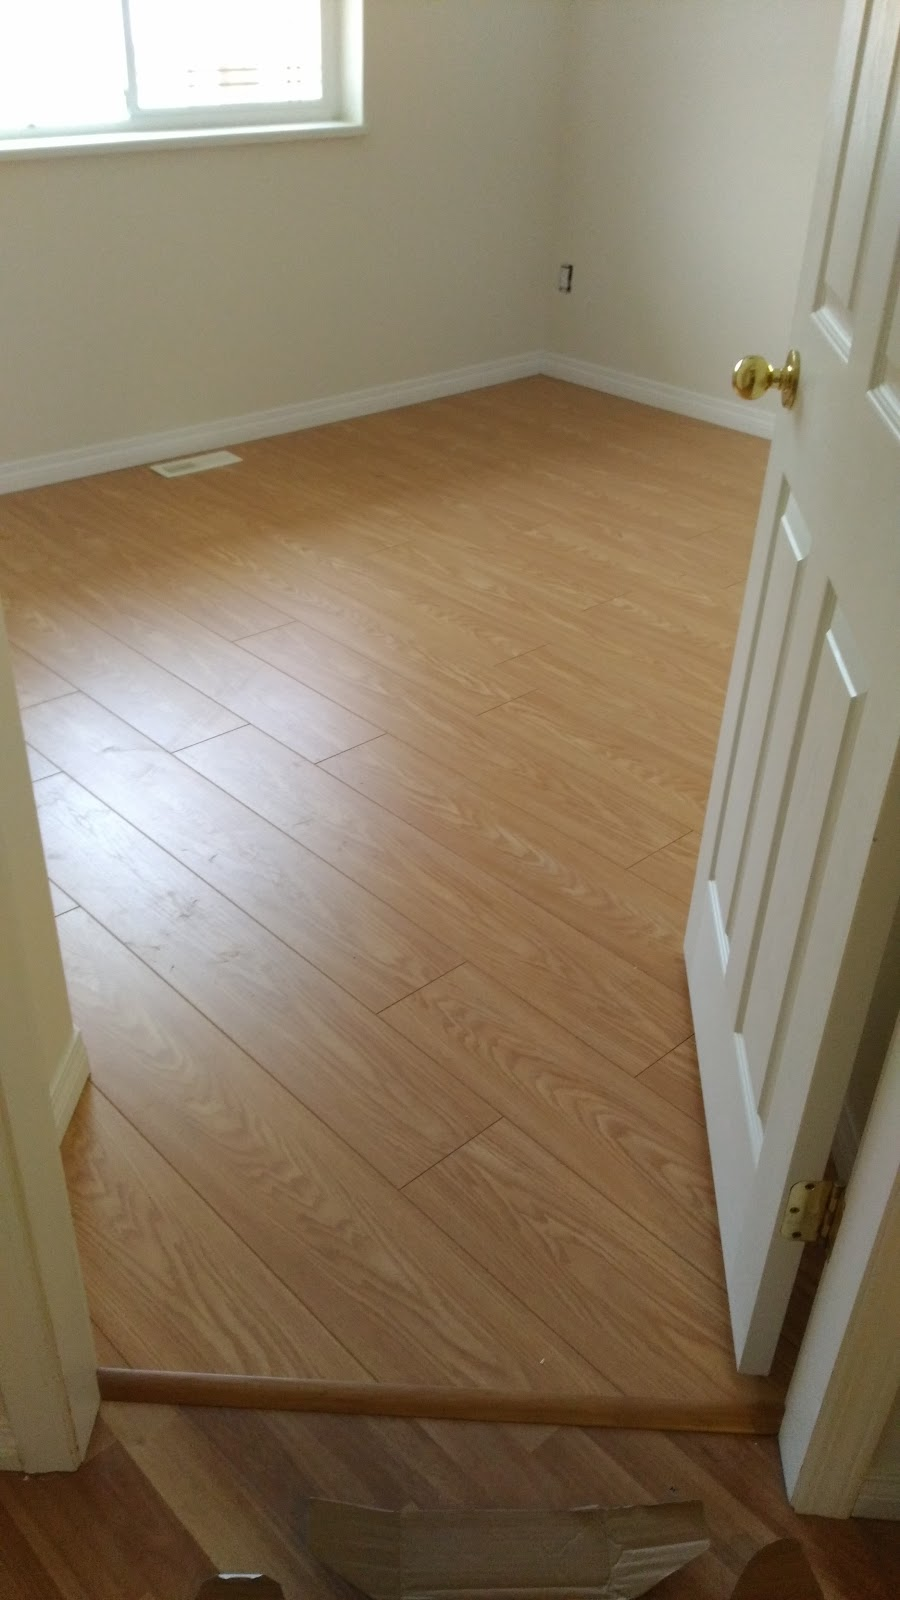 Laminate floor 238a st maple ridge for Flooring maple ridge